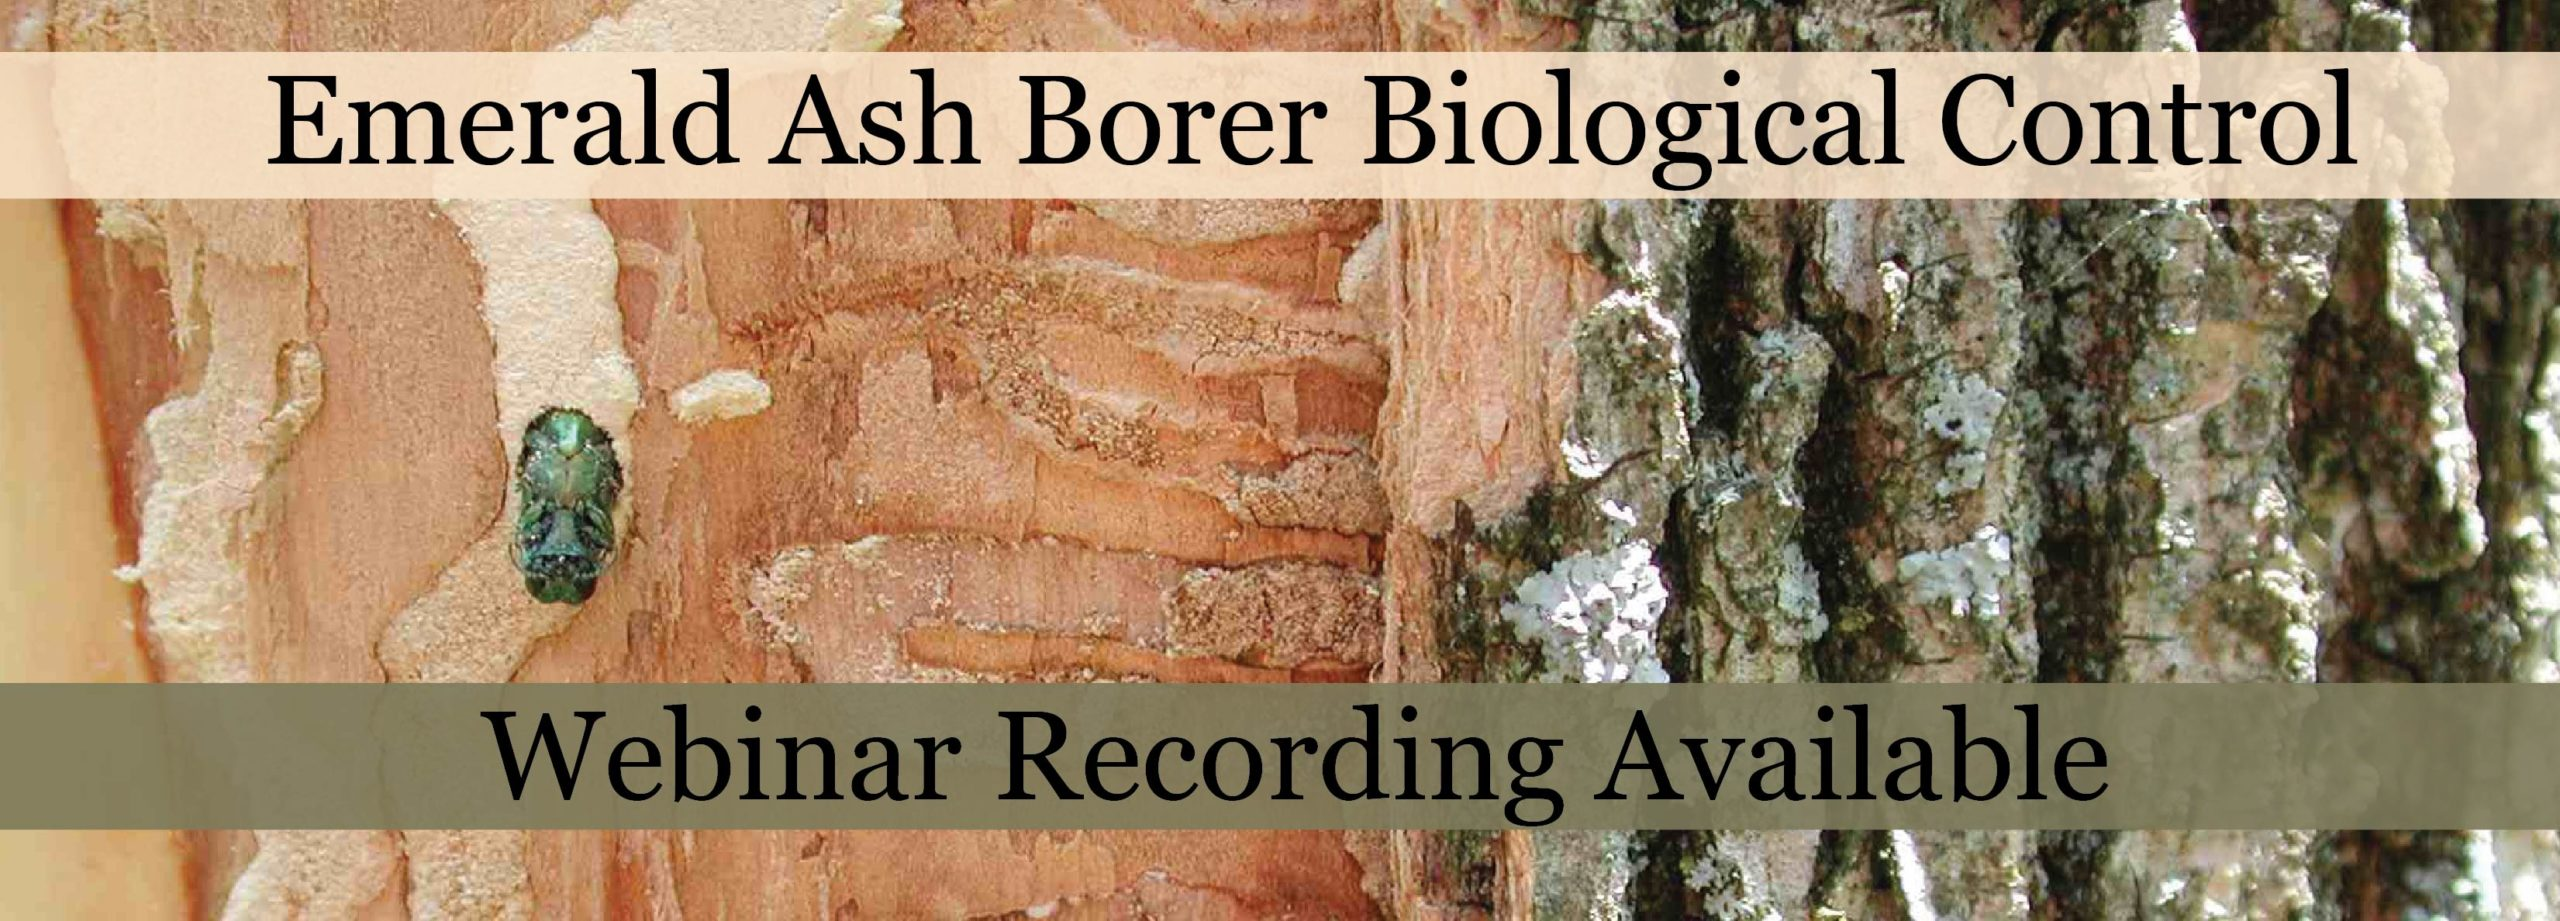 EAB-Biocontrol-Banner-01-scaled